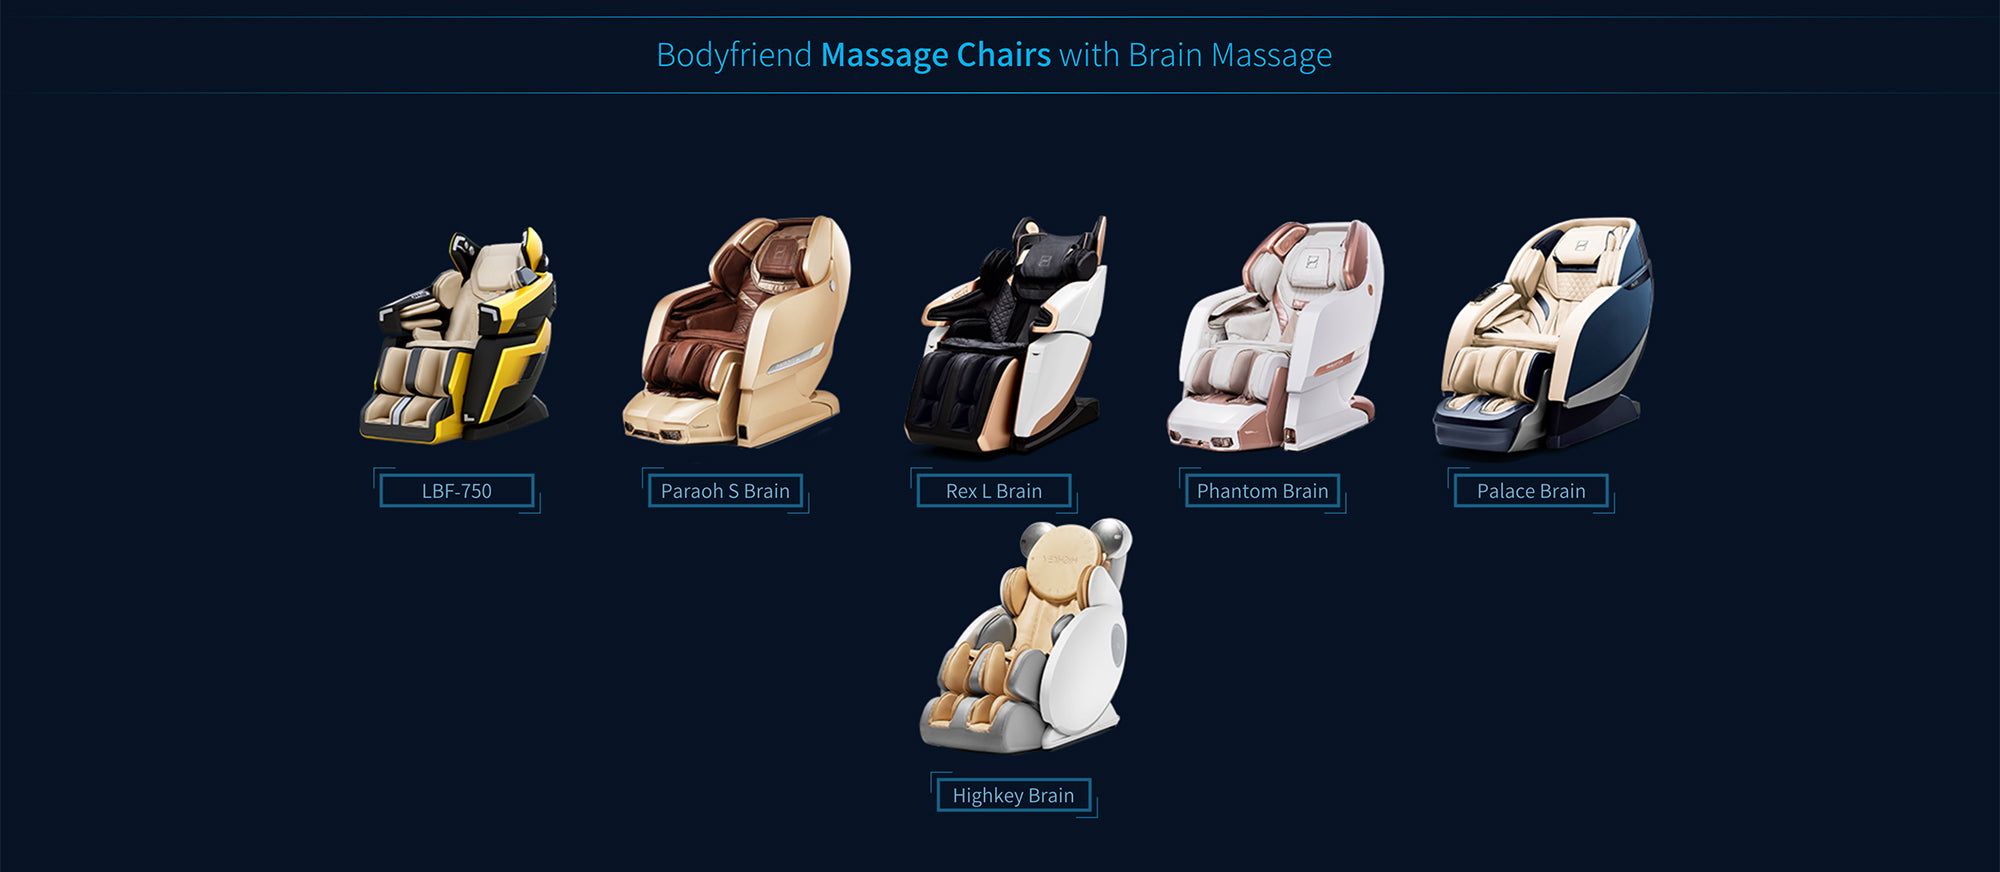 Following Chairs Comes With Brain Massage Feature LBF-750, Paraoh S Brain, Rex L Brain, Phantom Brain, Palace Brain, Highkey Brain